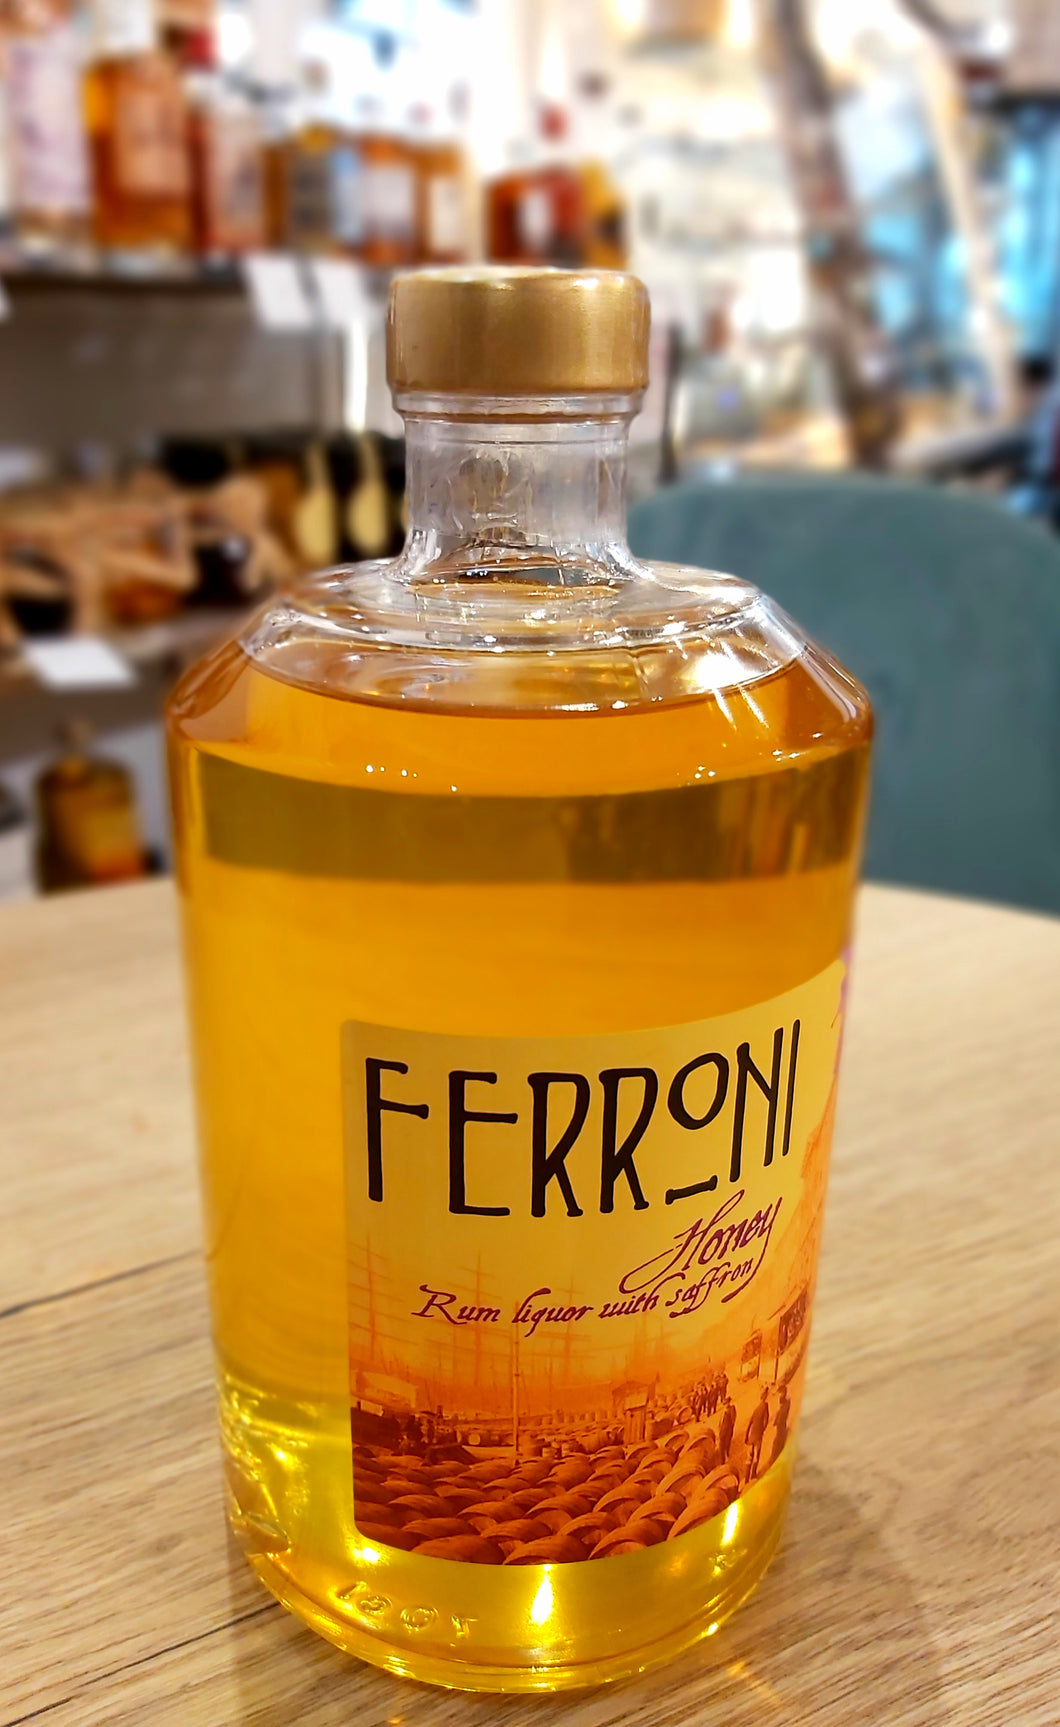 Rhum honey Ferroni 70cl